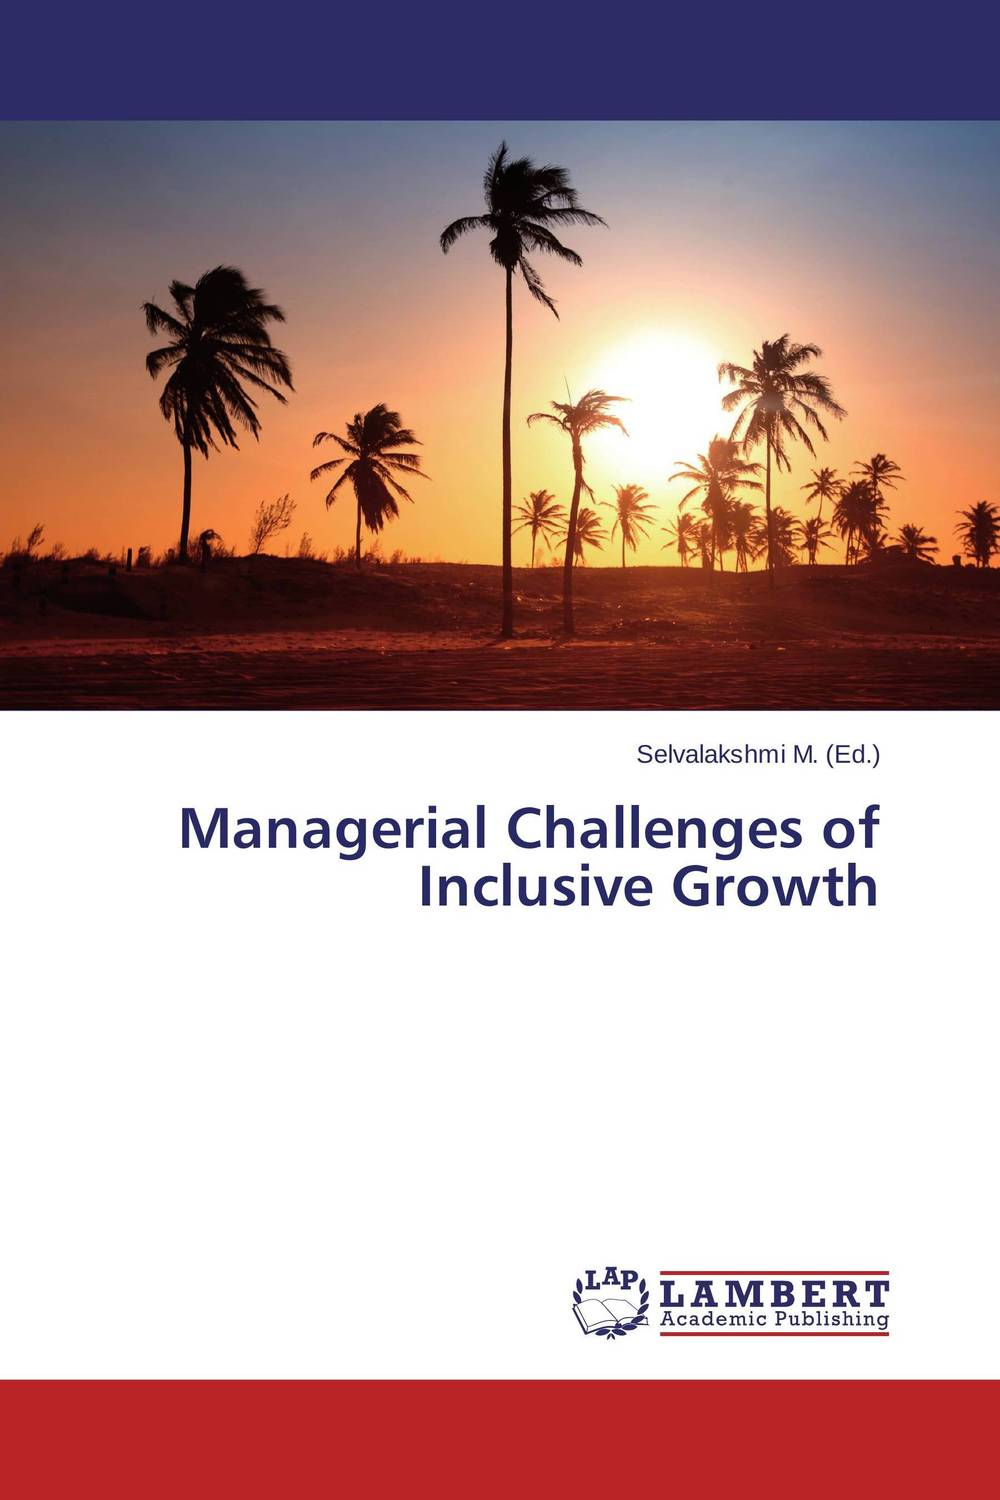 Managerial Challenges of Inclusive Growth robert benfari c understanding and changing your management style assessments and tools for self development